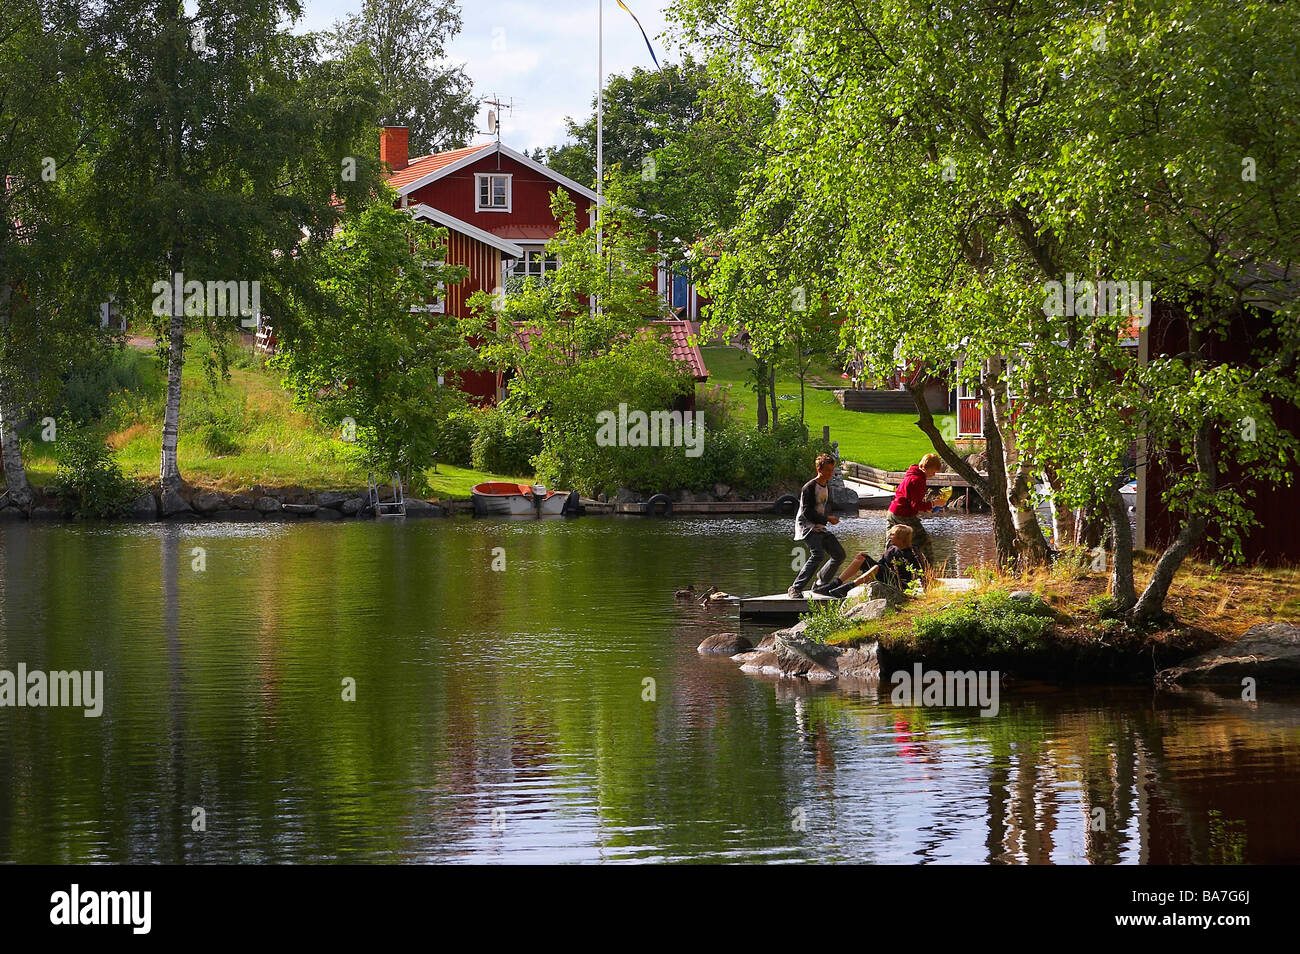 House and children, playing at the bank in Sundborn, Dalarna, middle Sweden - Stock Image